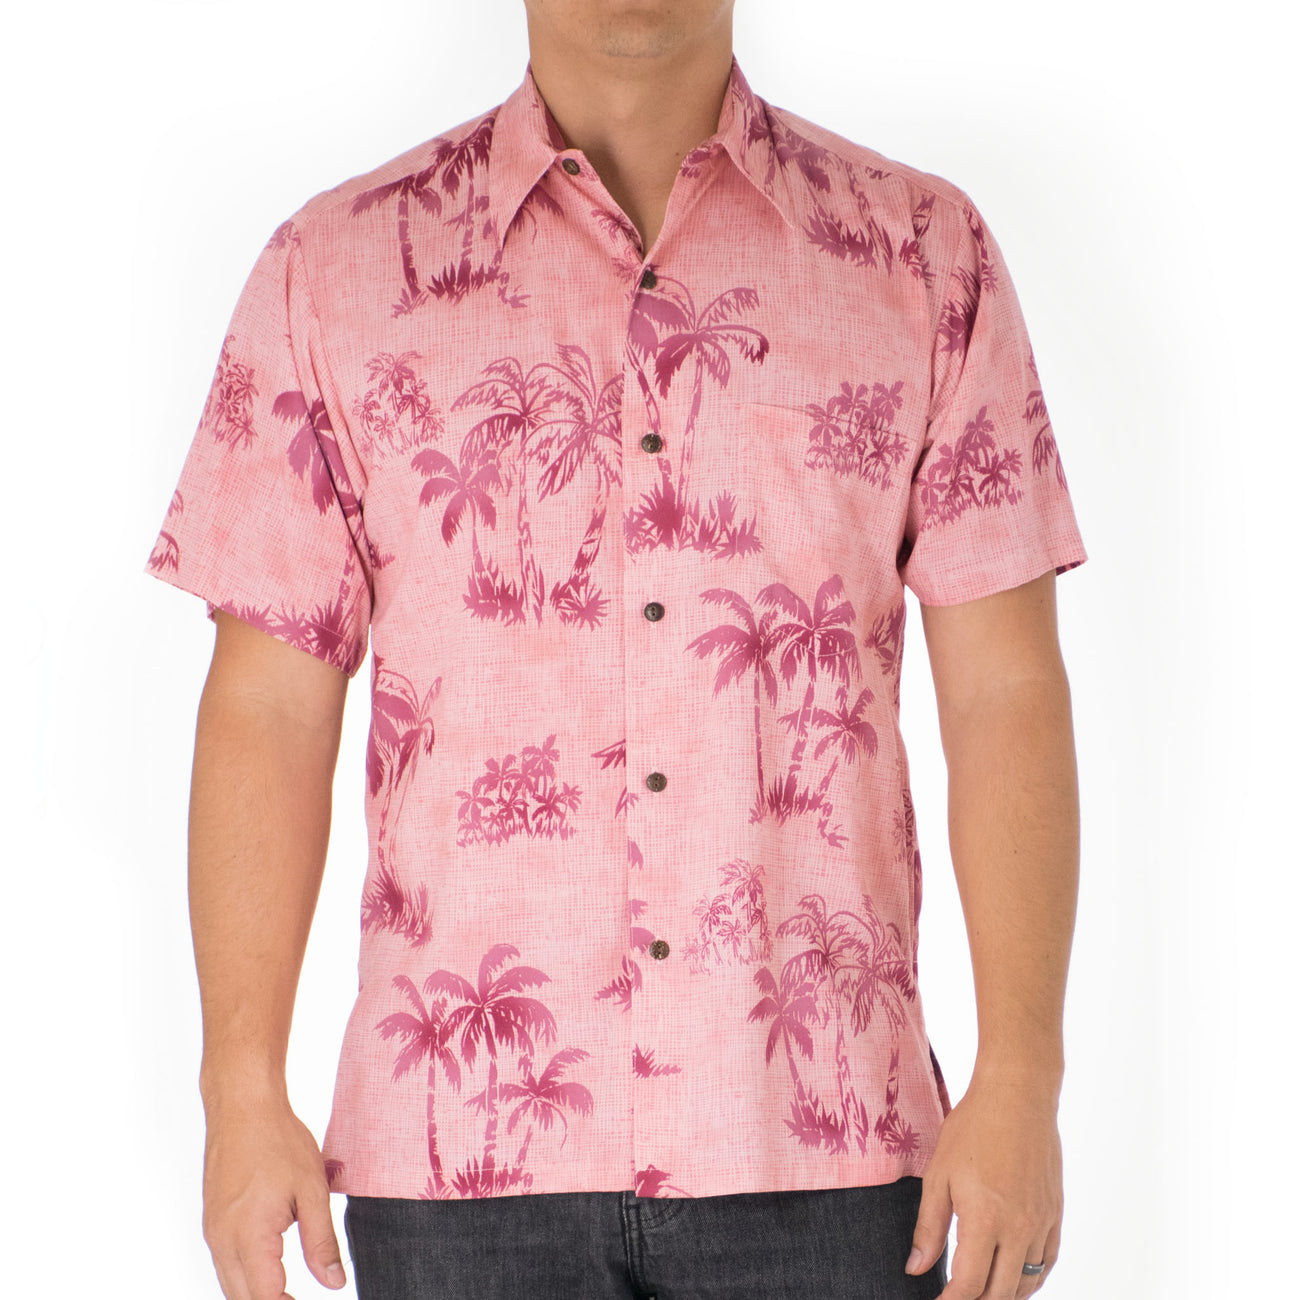 COCO PLANTATION MODERN FIT ALOHA SHIRT